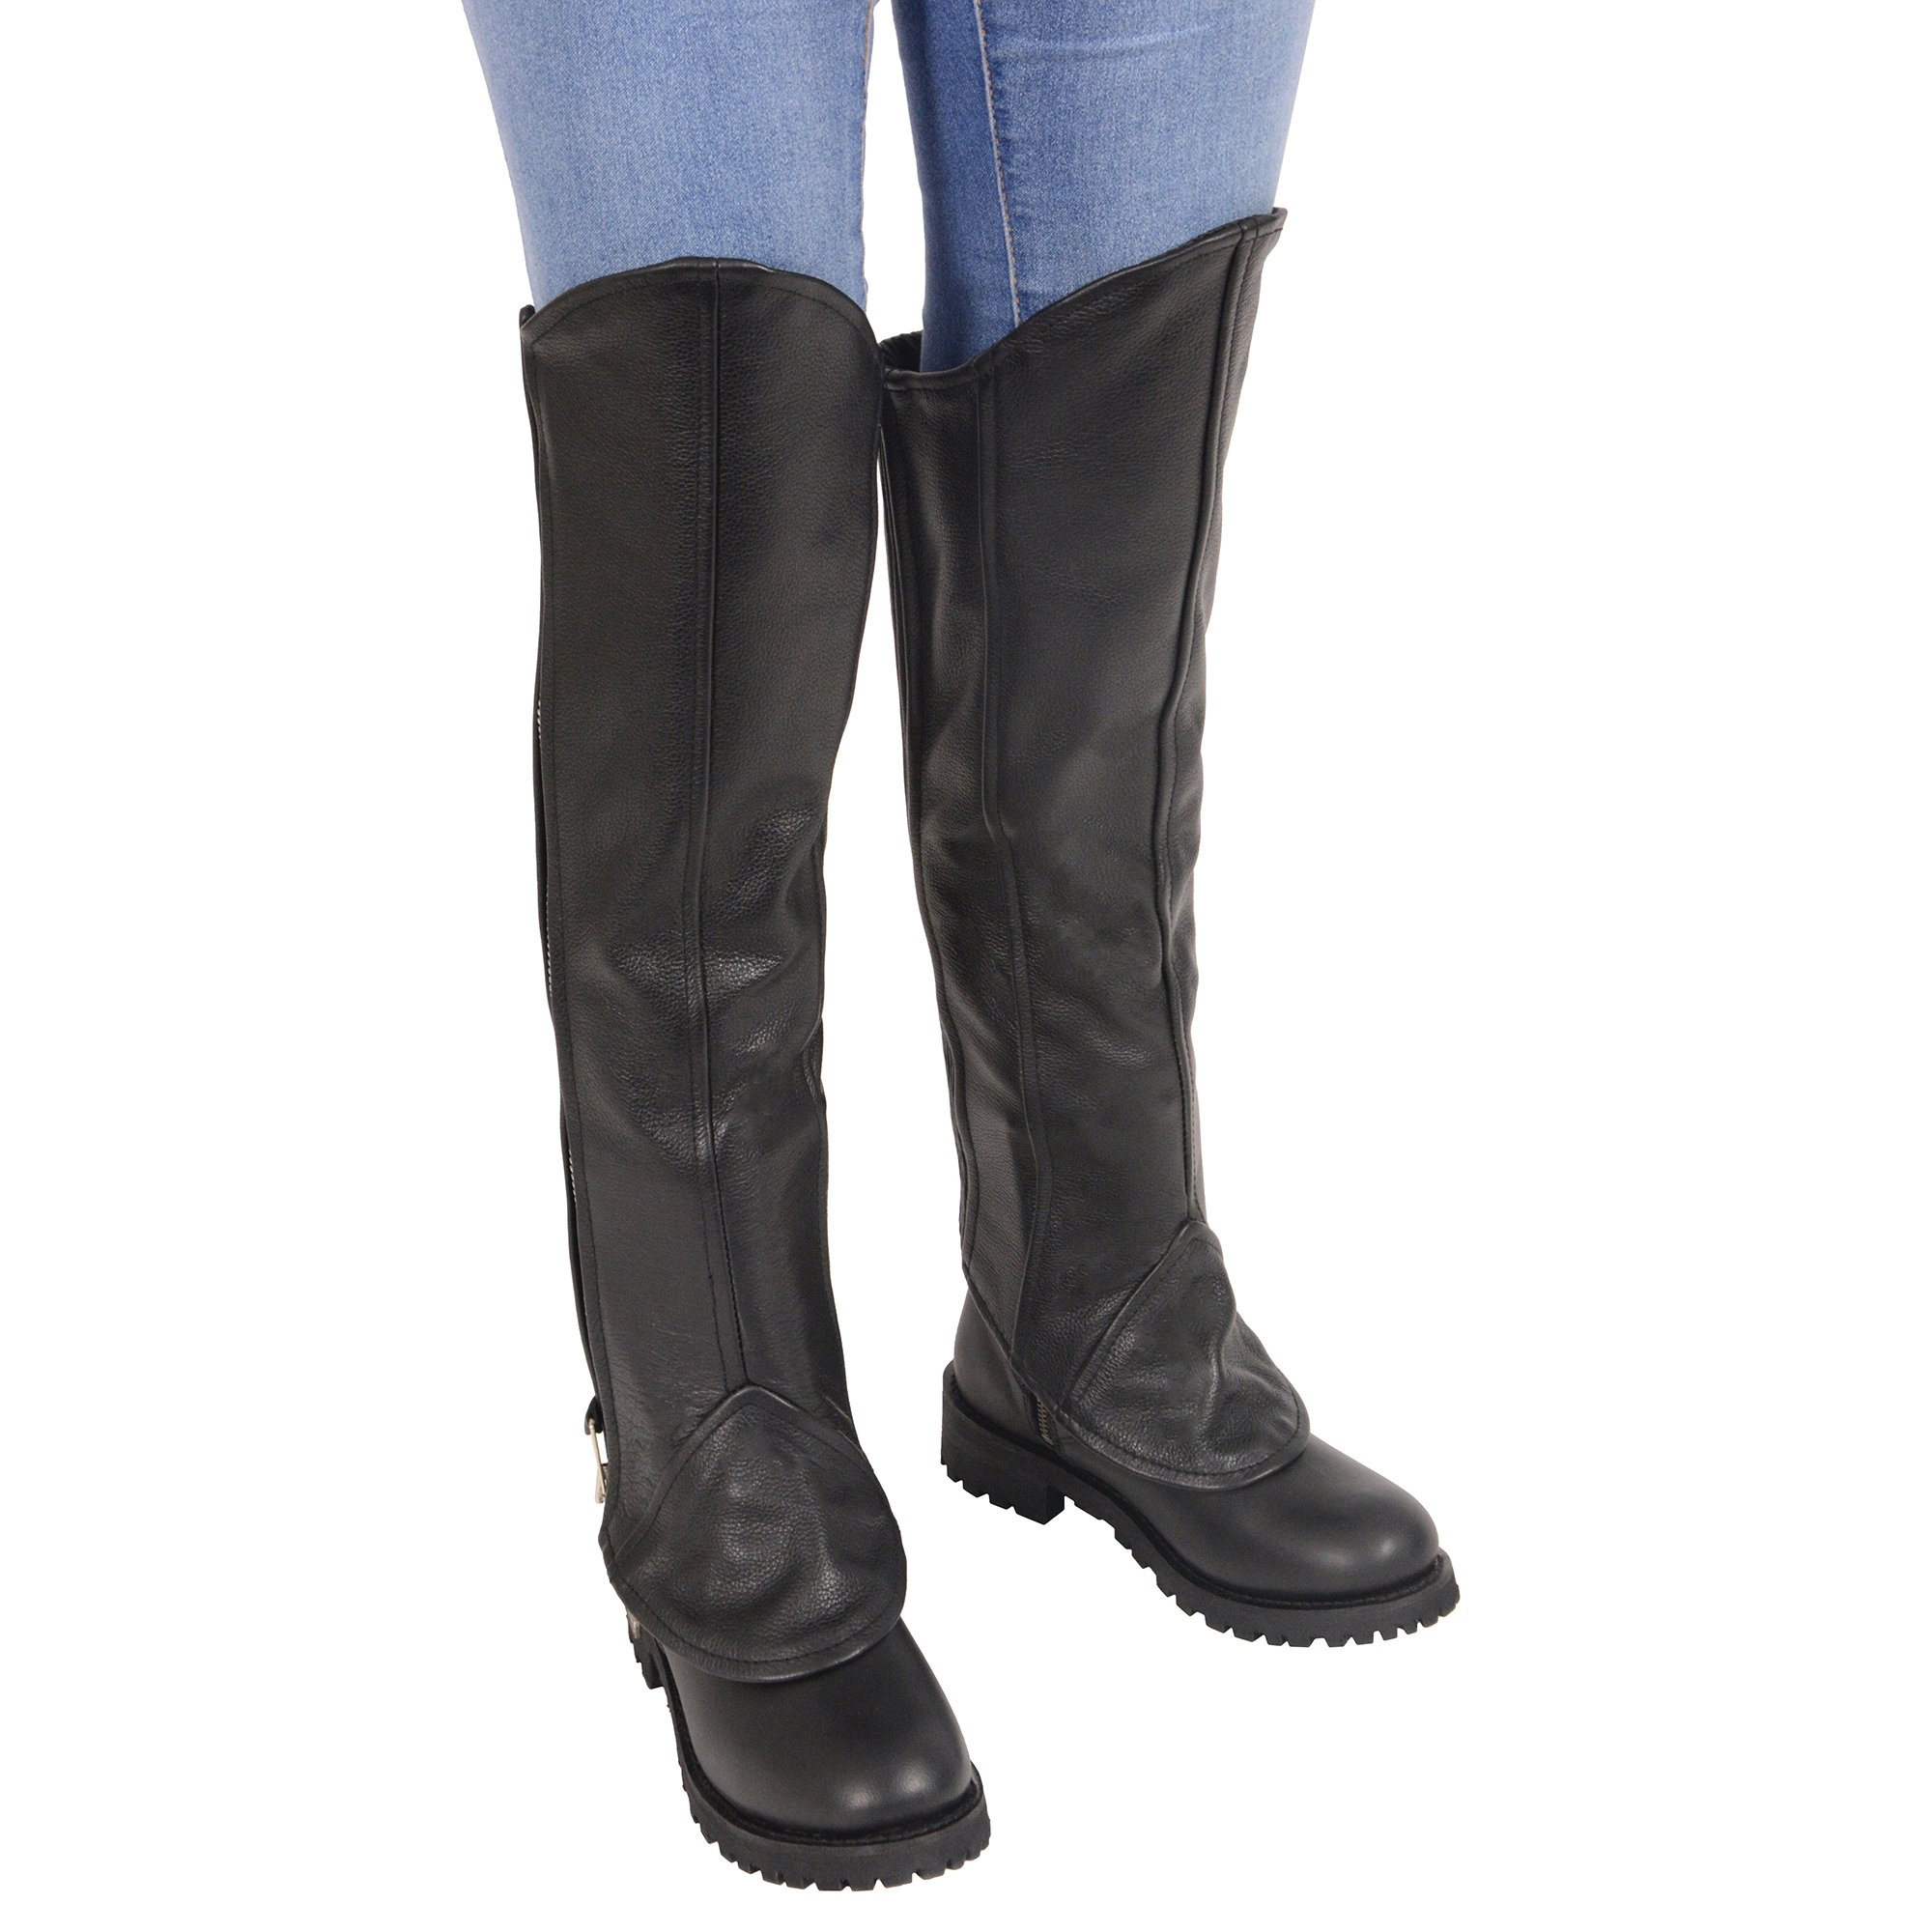 Milwaukee Leather Women's Knee High Half Chap w/Zipper Entry-Black X-Large, Large/X-Large) by Milwaukee Leather